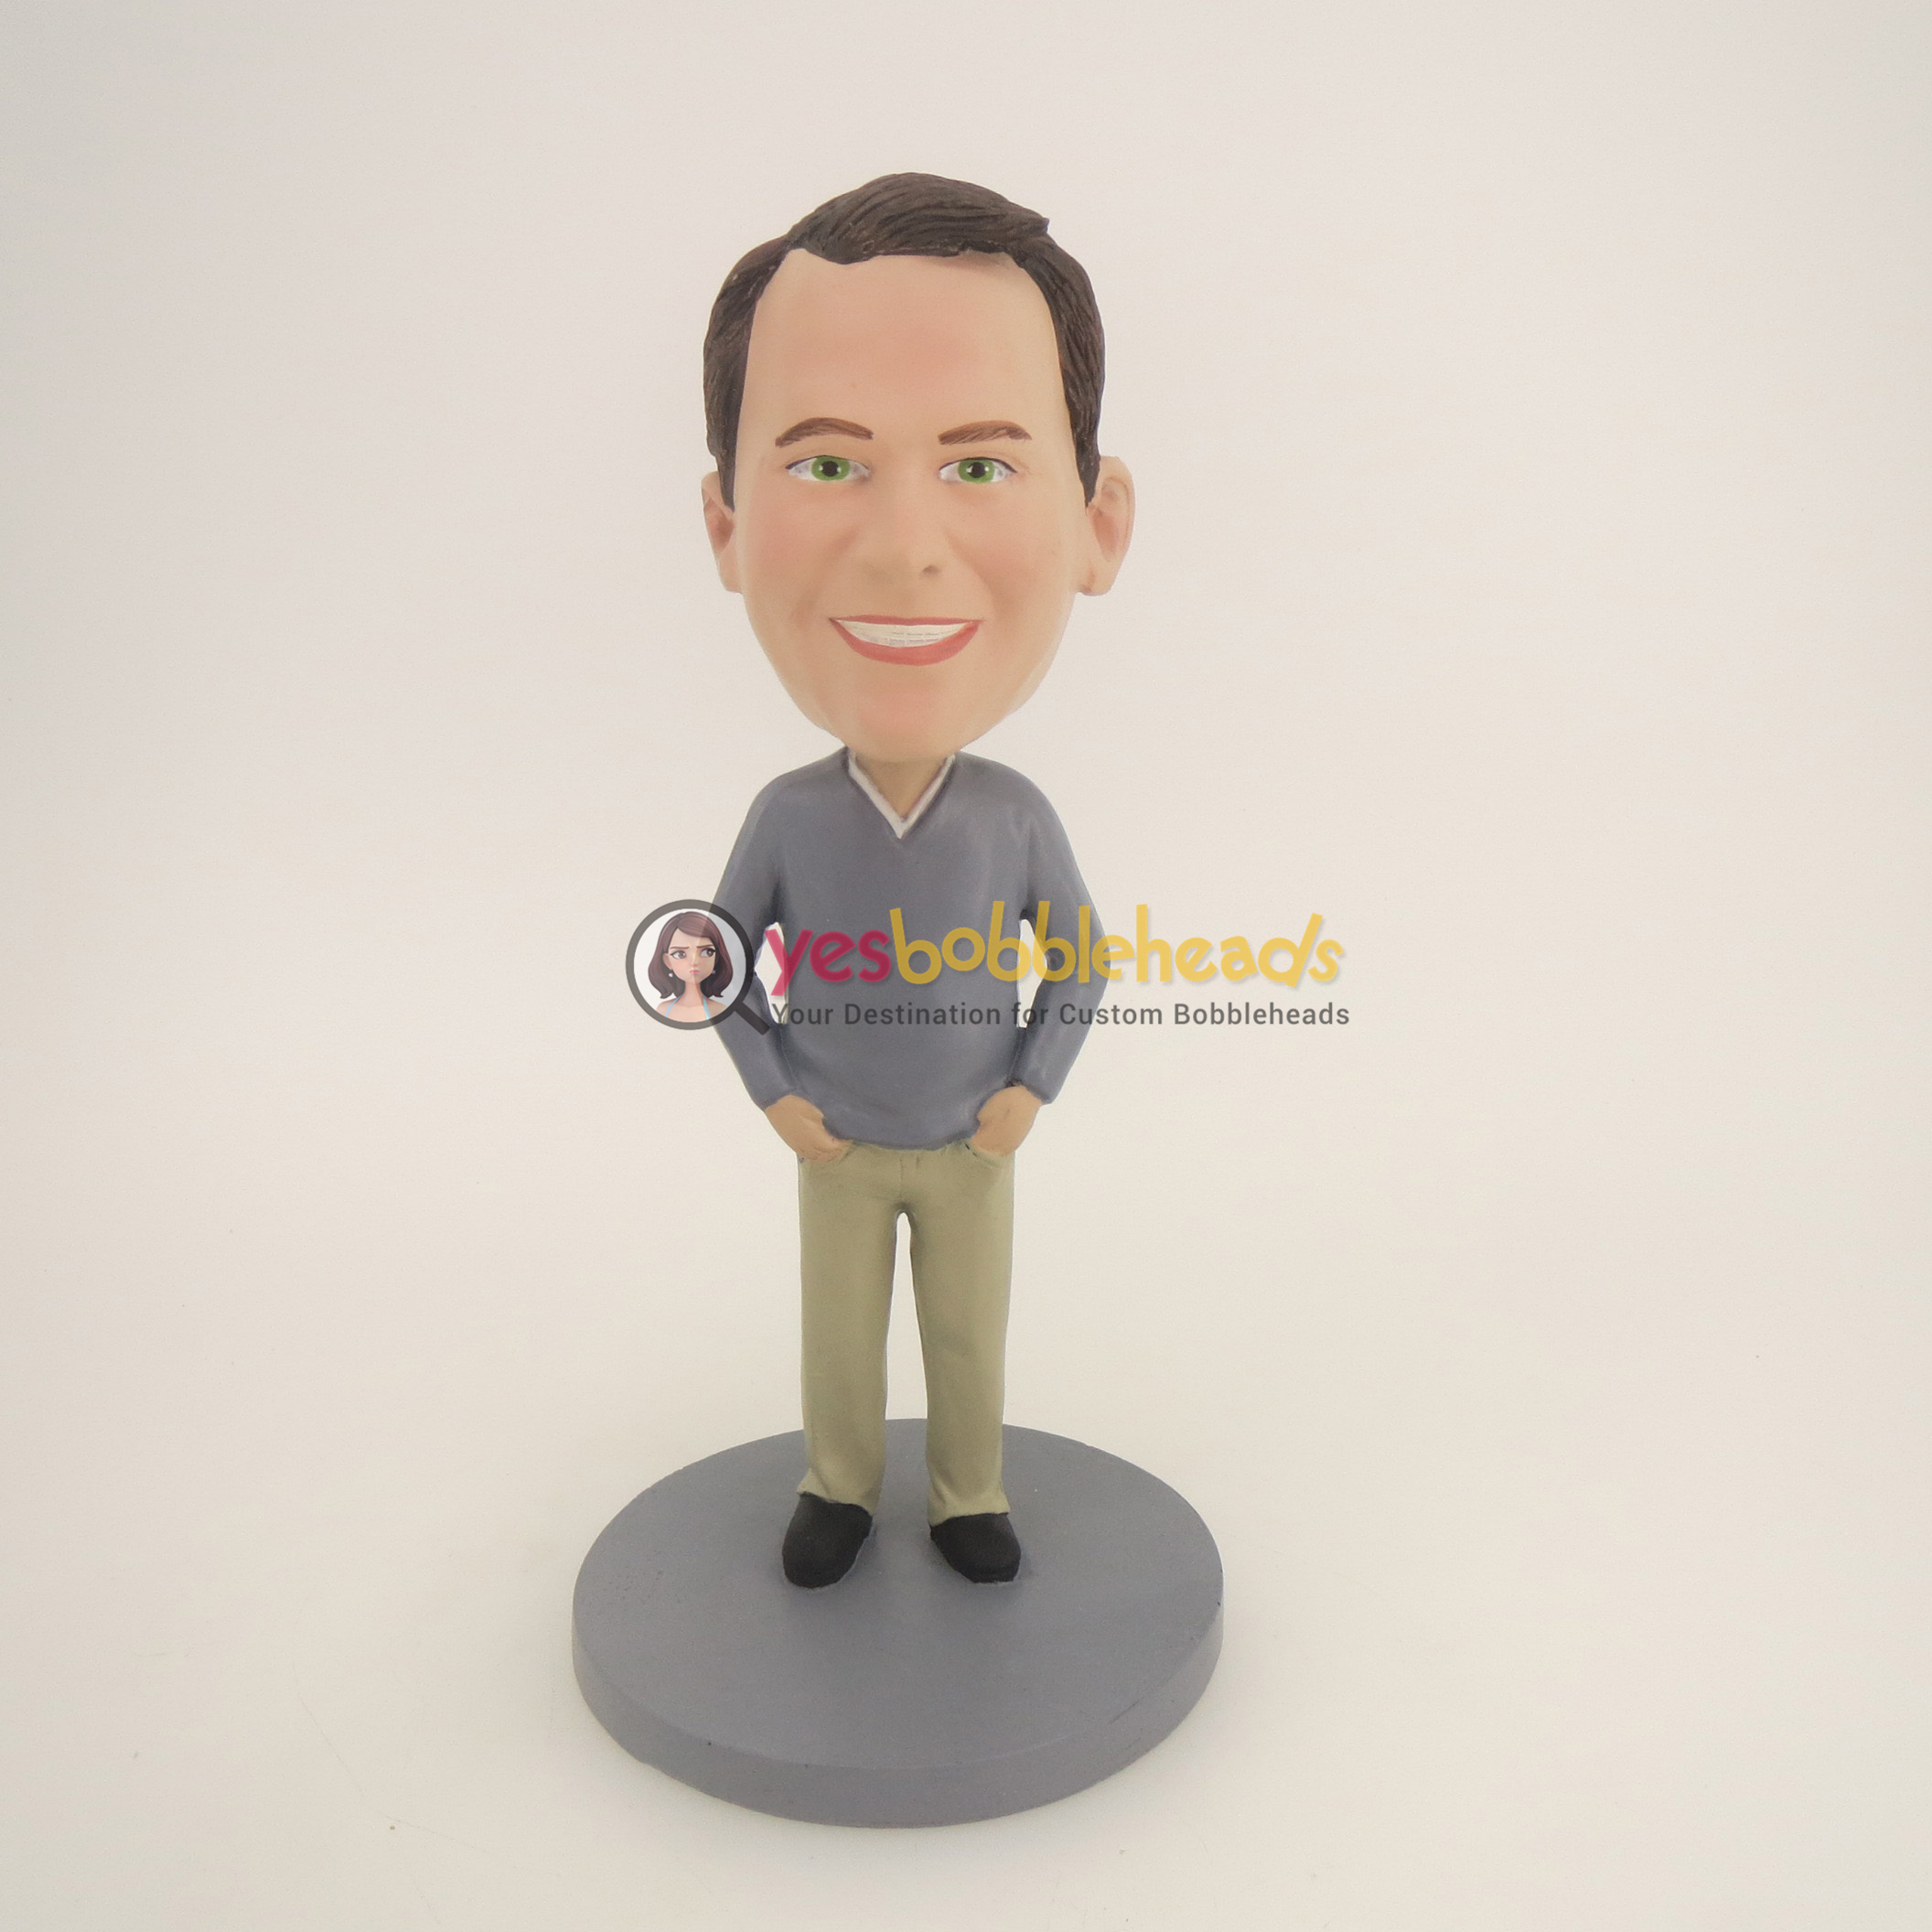 Picture of Custom Bobblehead Doll: Casual Man With Nice Smiling